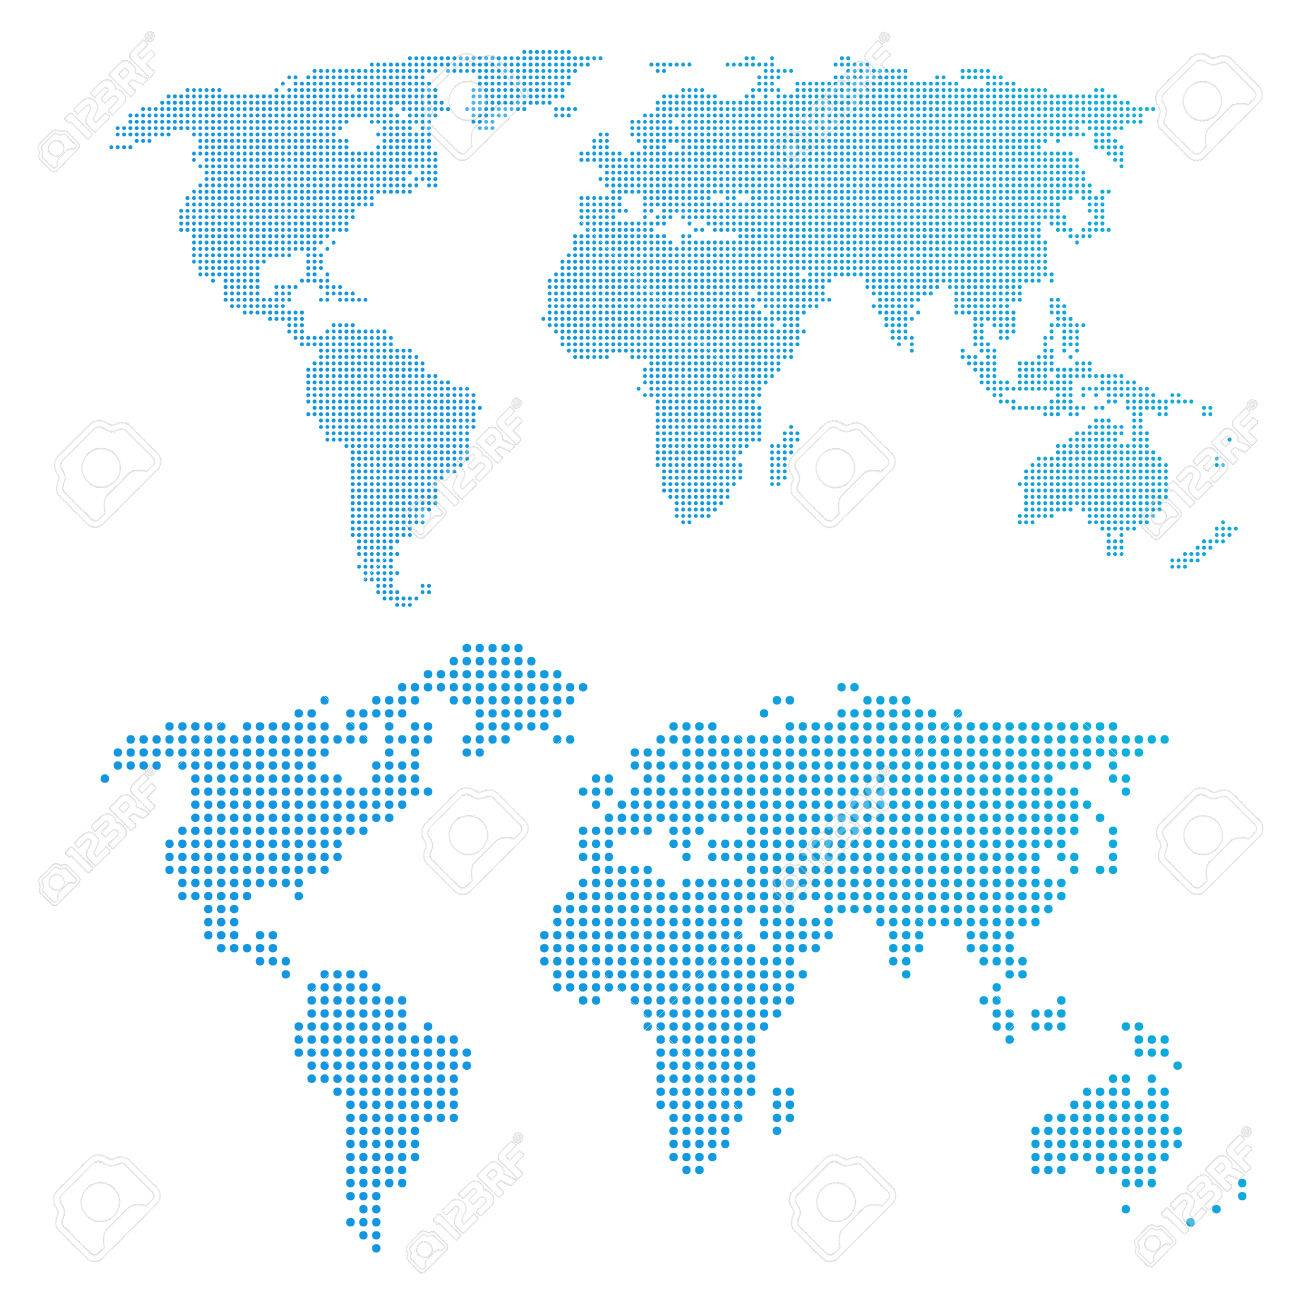 World map dots png full hd pictures 4k ultra full wallpapers world map white dots presidio ventures world map white dots map dot png engaging hd maps wallpaper full hd maps wallpapers maps in r anthrospace no gumiabroncs Images